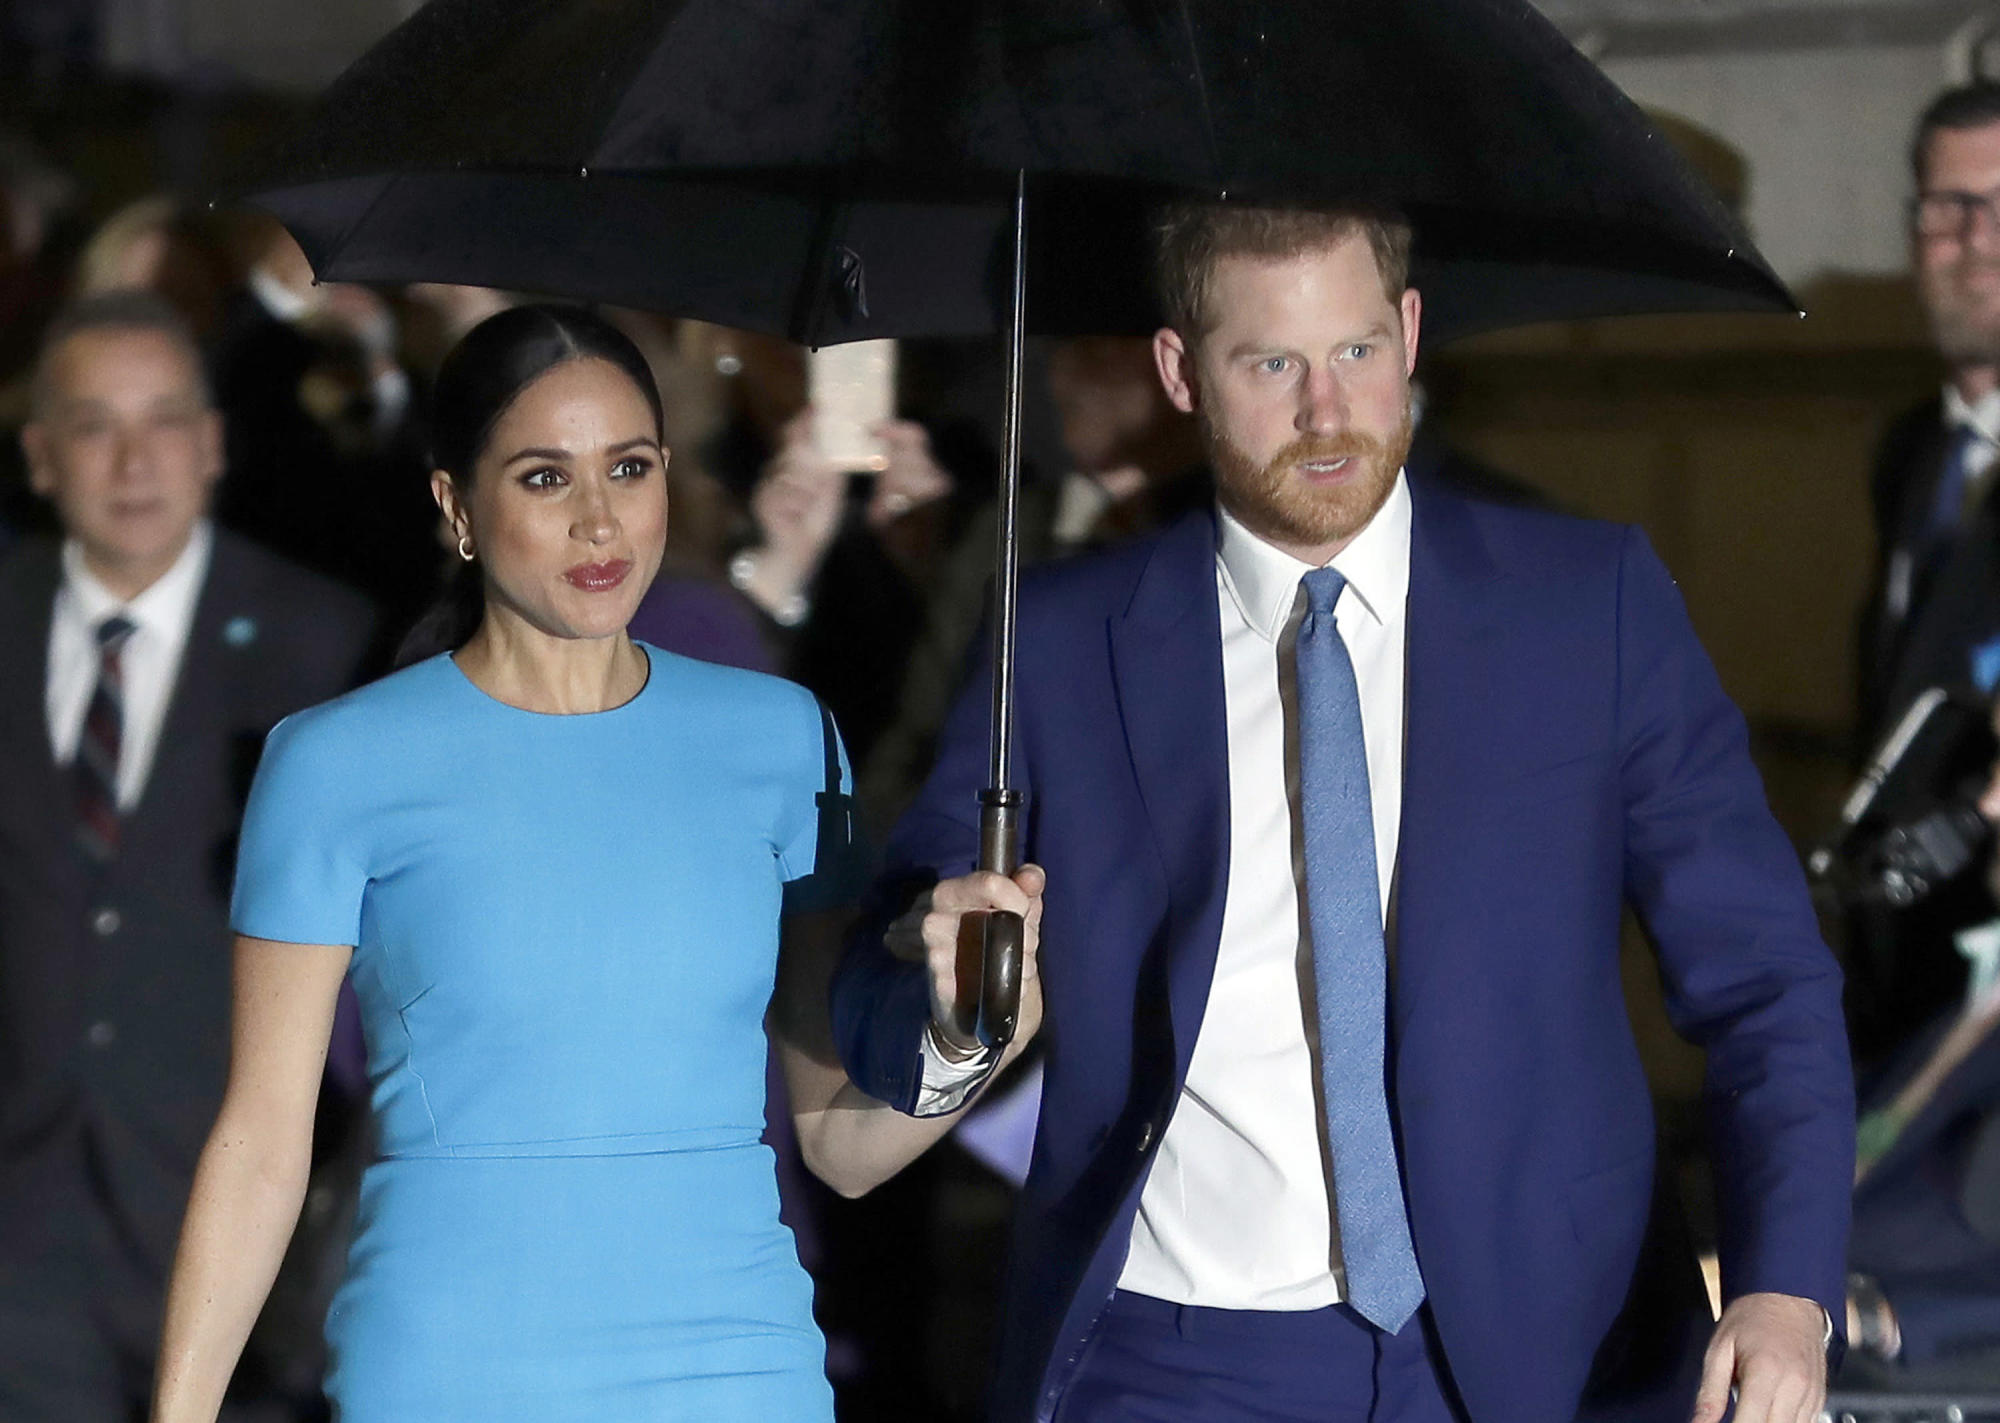 Prince Harry: Split from royal life 'unbelievably tough' - Yahoo News